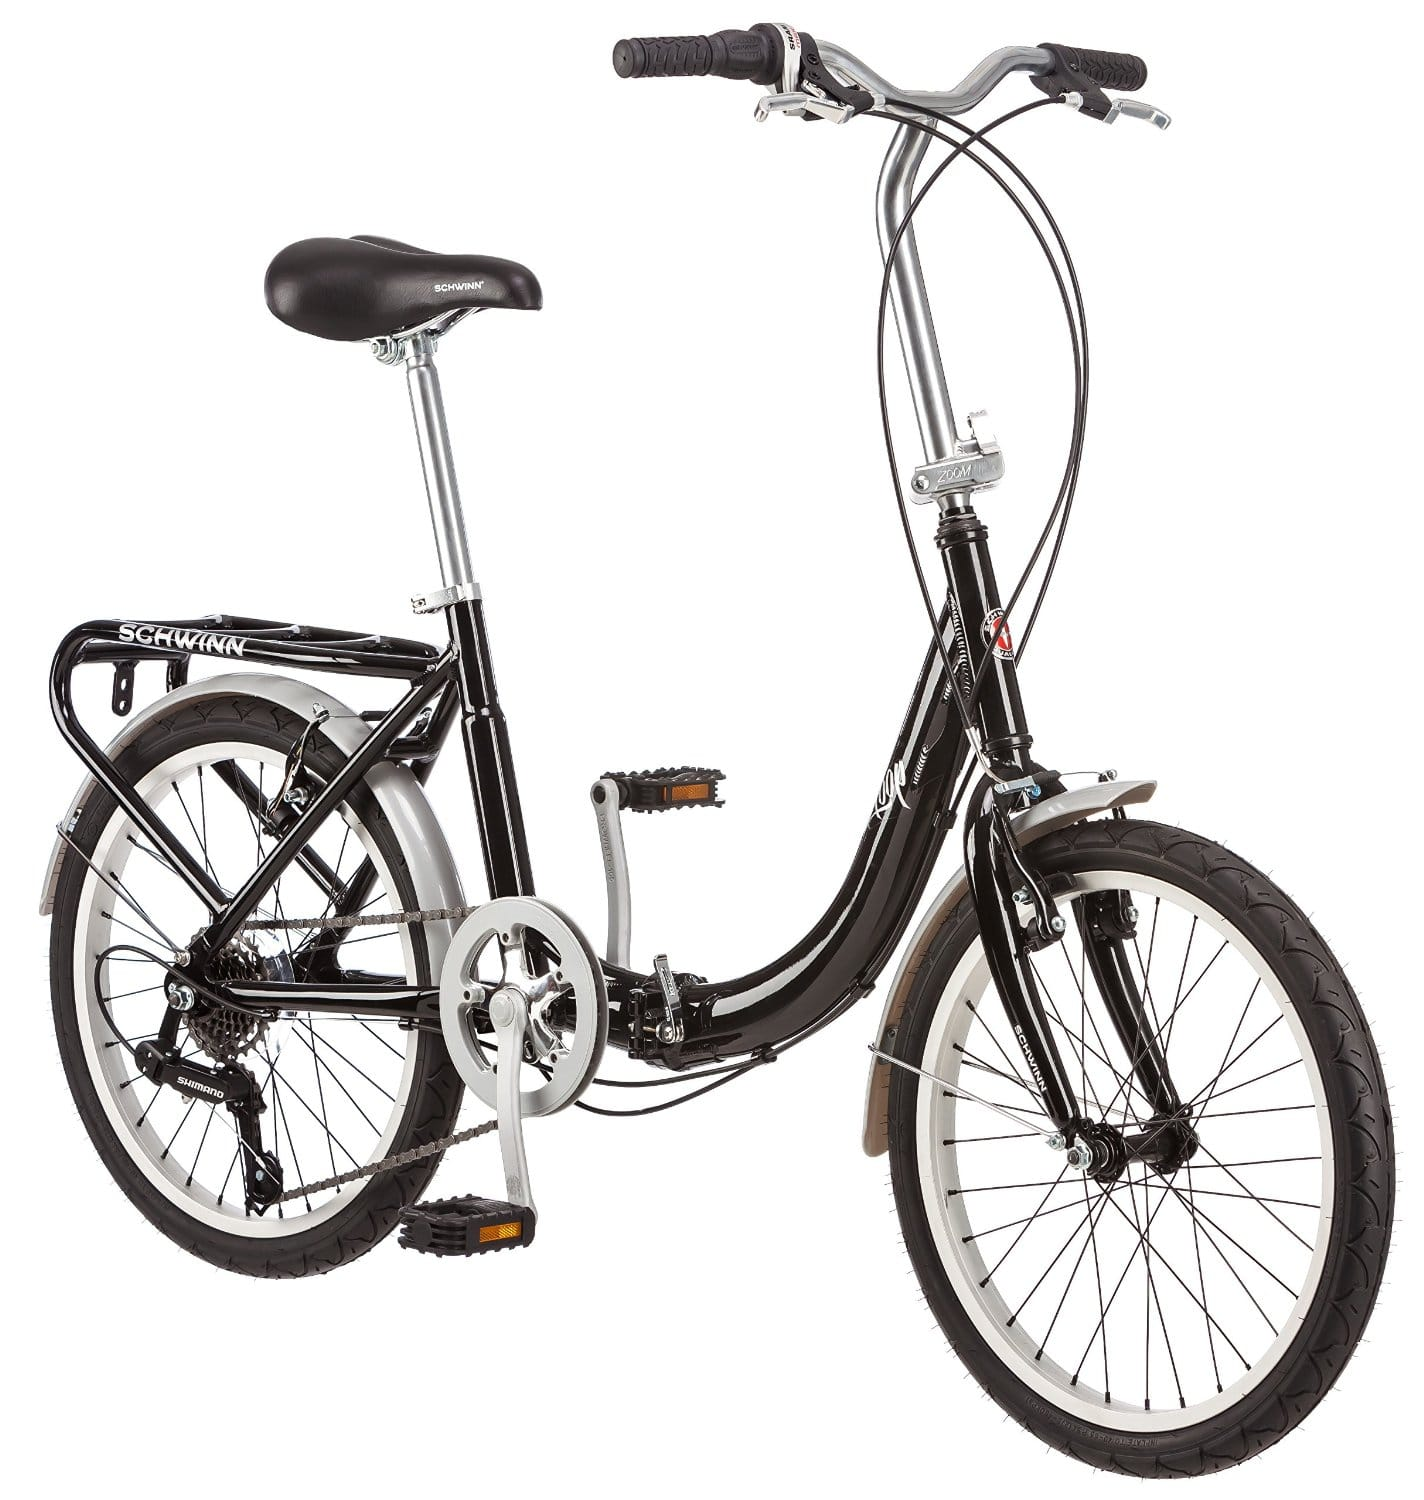 Top 10 Best Folding Bikes In 2020 Reviews